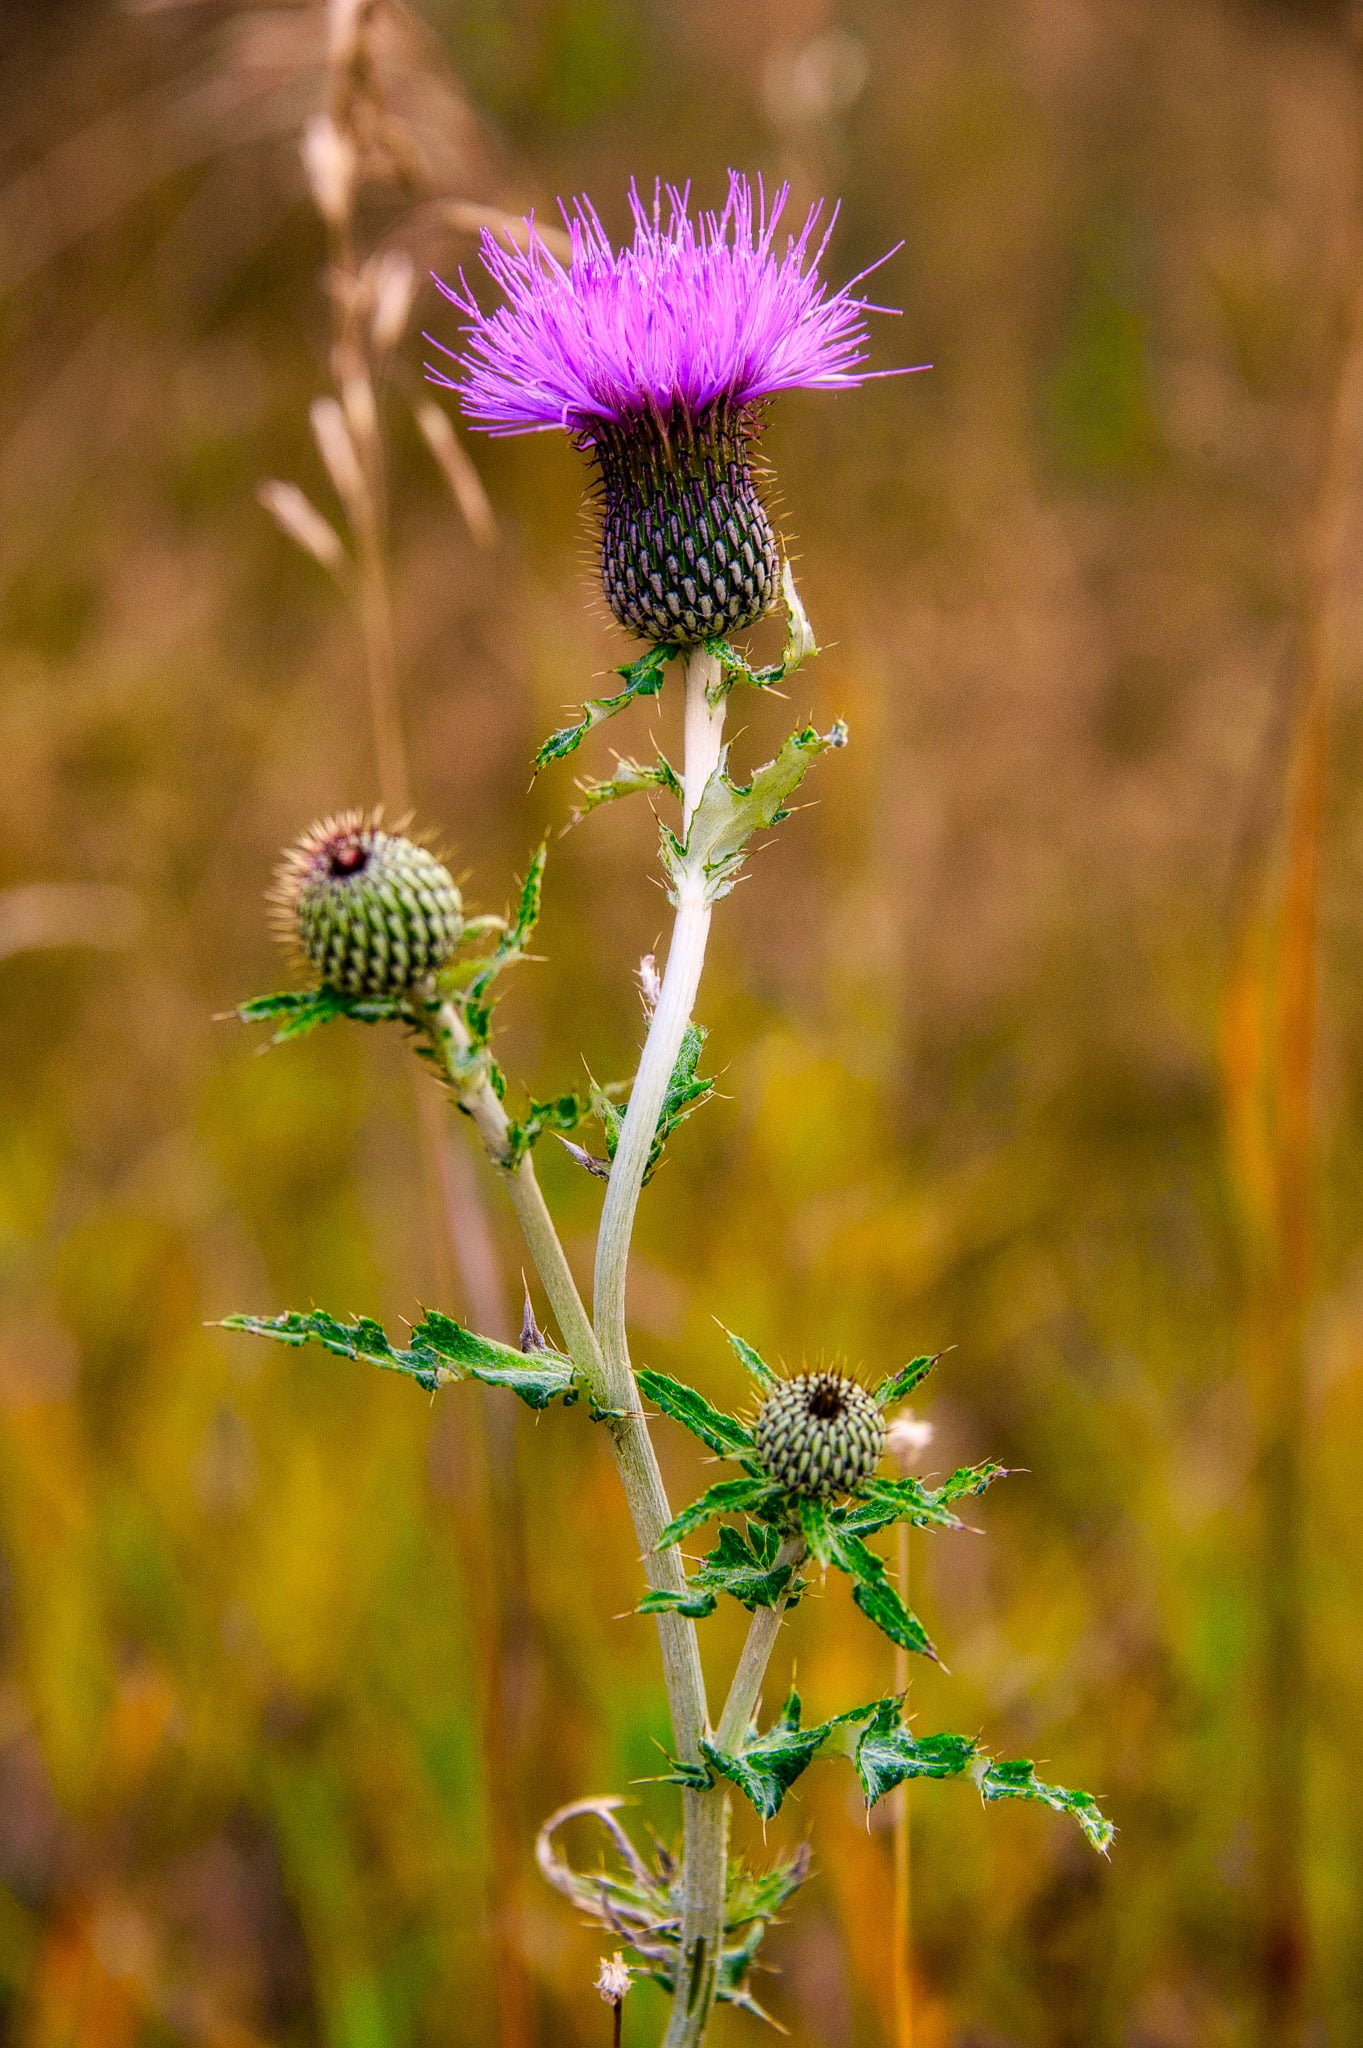 This Canadian Thistle is lovely even though it is an invasive species. It was growing in a field at Sylvan Lake in Custer State Park, South Dakota.